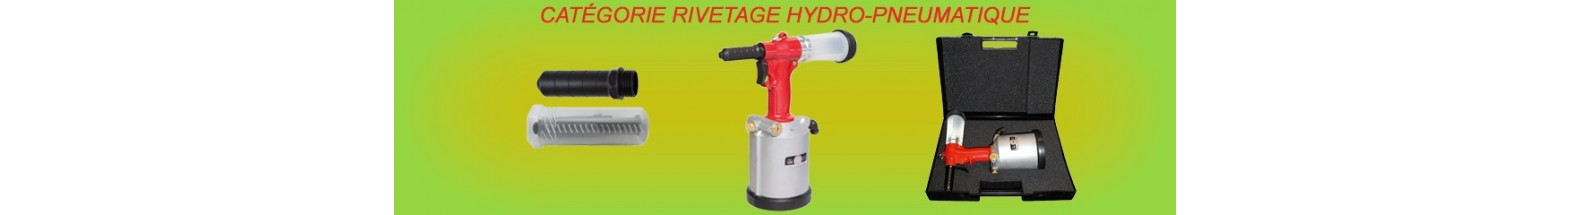 Rivetage hydro-pneumatique